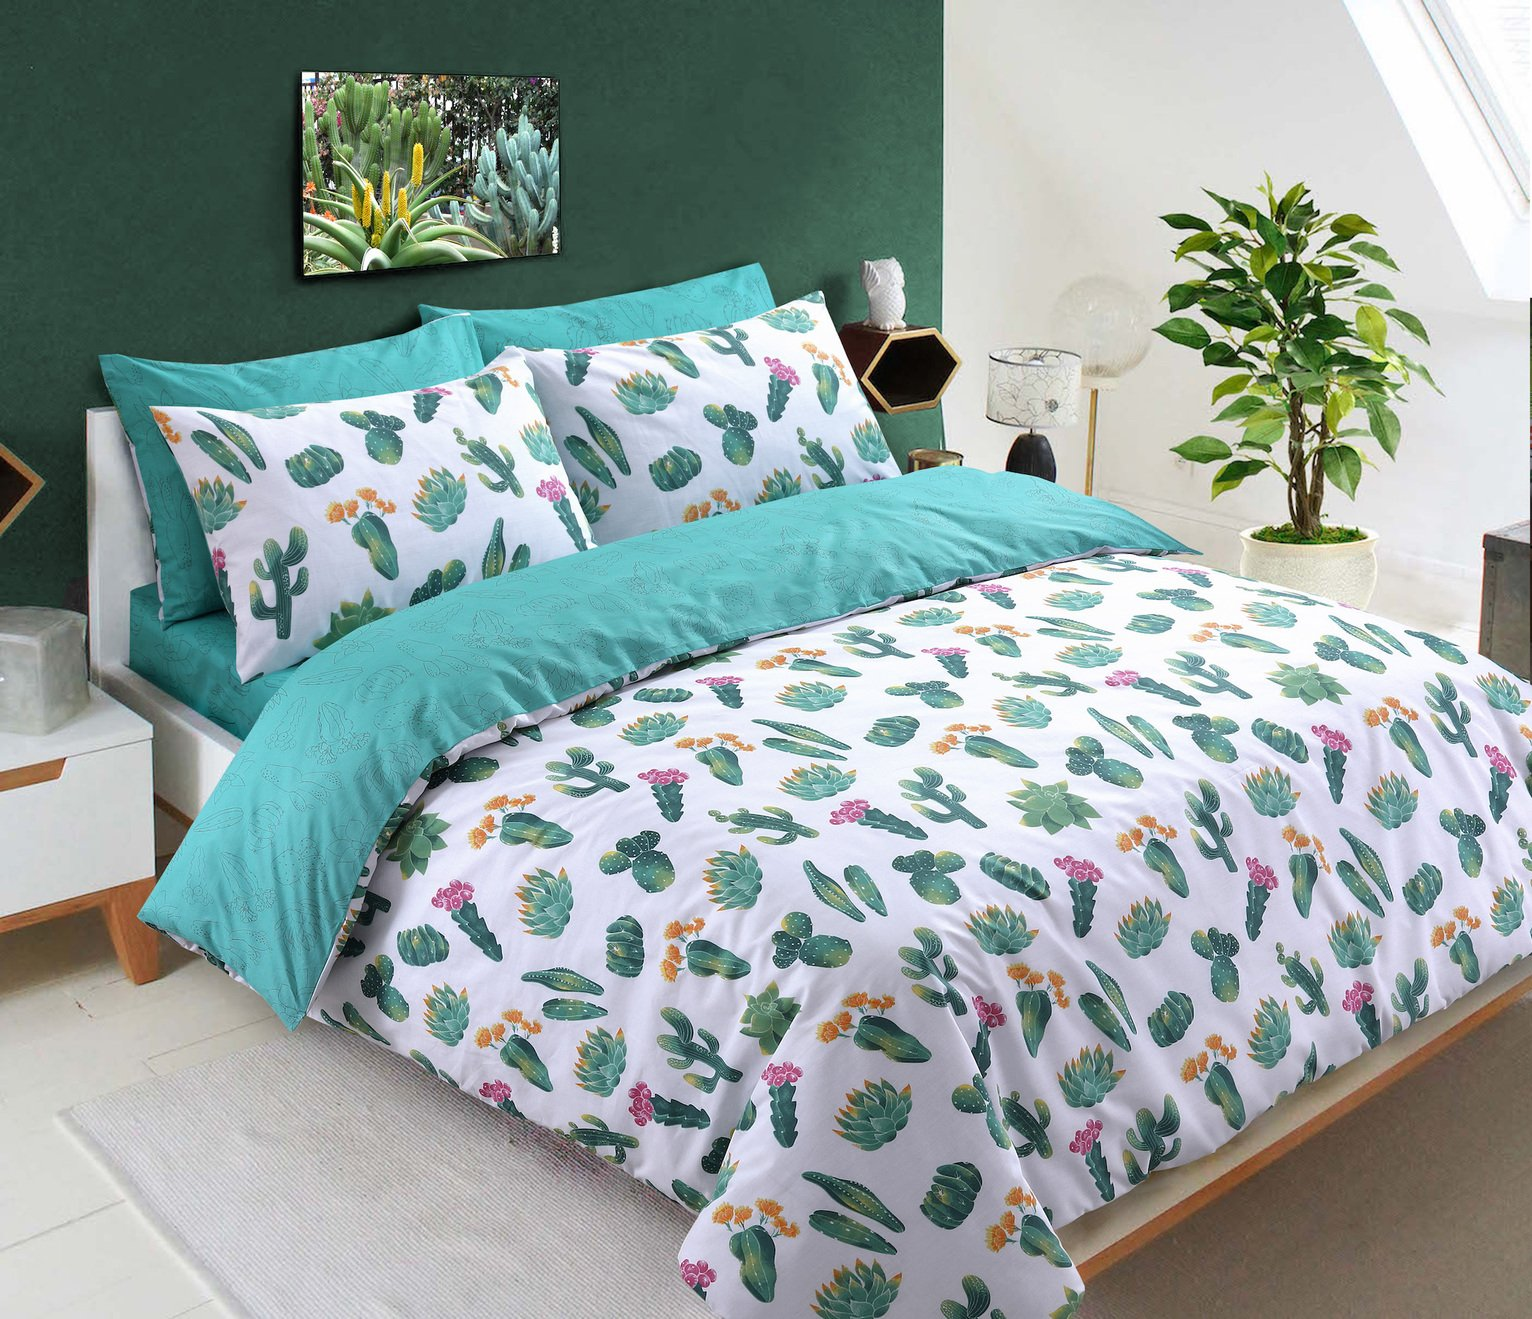 Argos Home Tropical Cactus Bedding Set – Kingsize